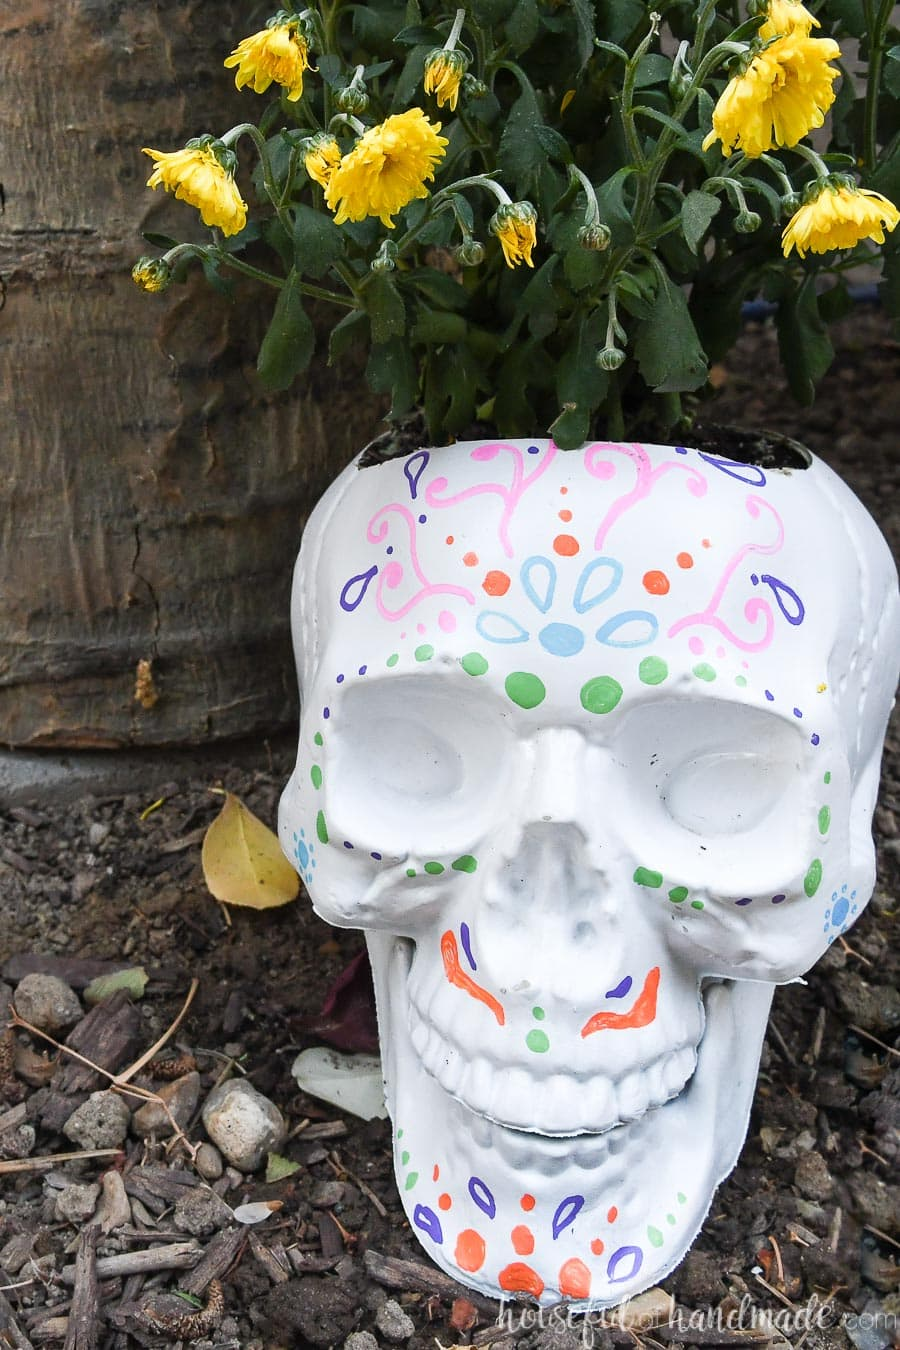 White DIY sugar skull pot with yellow mums planted in them.